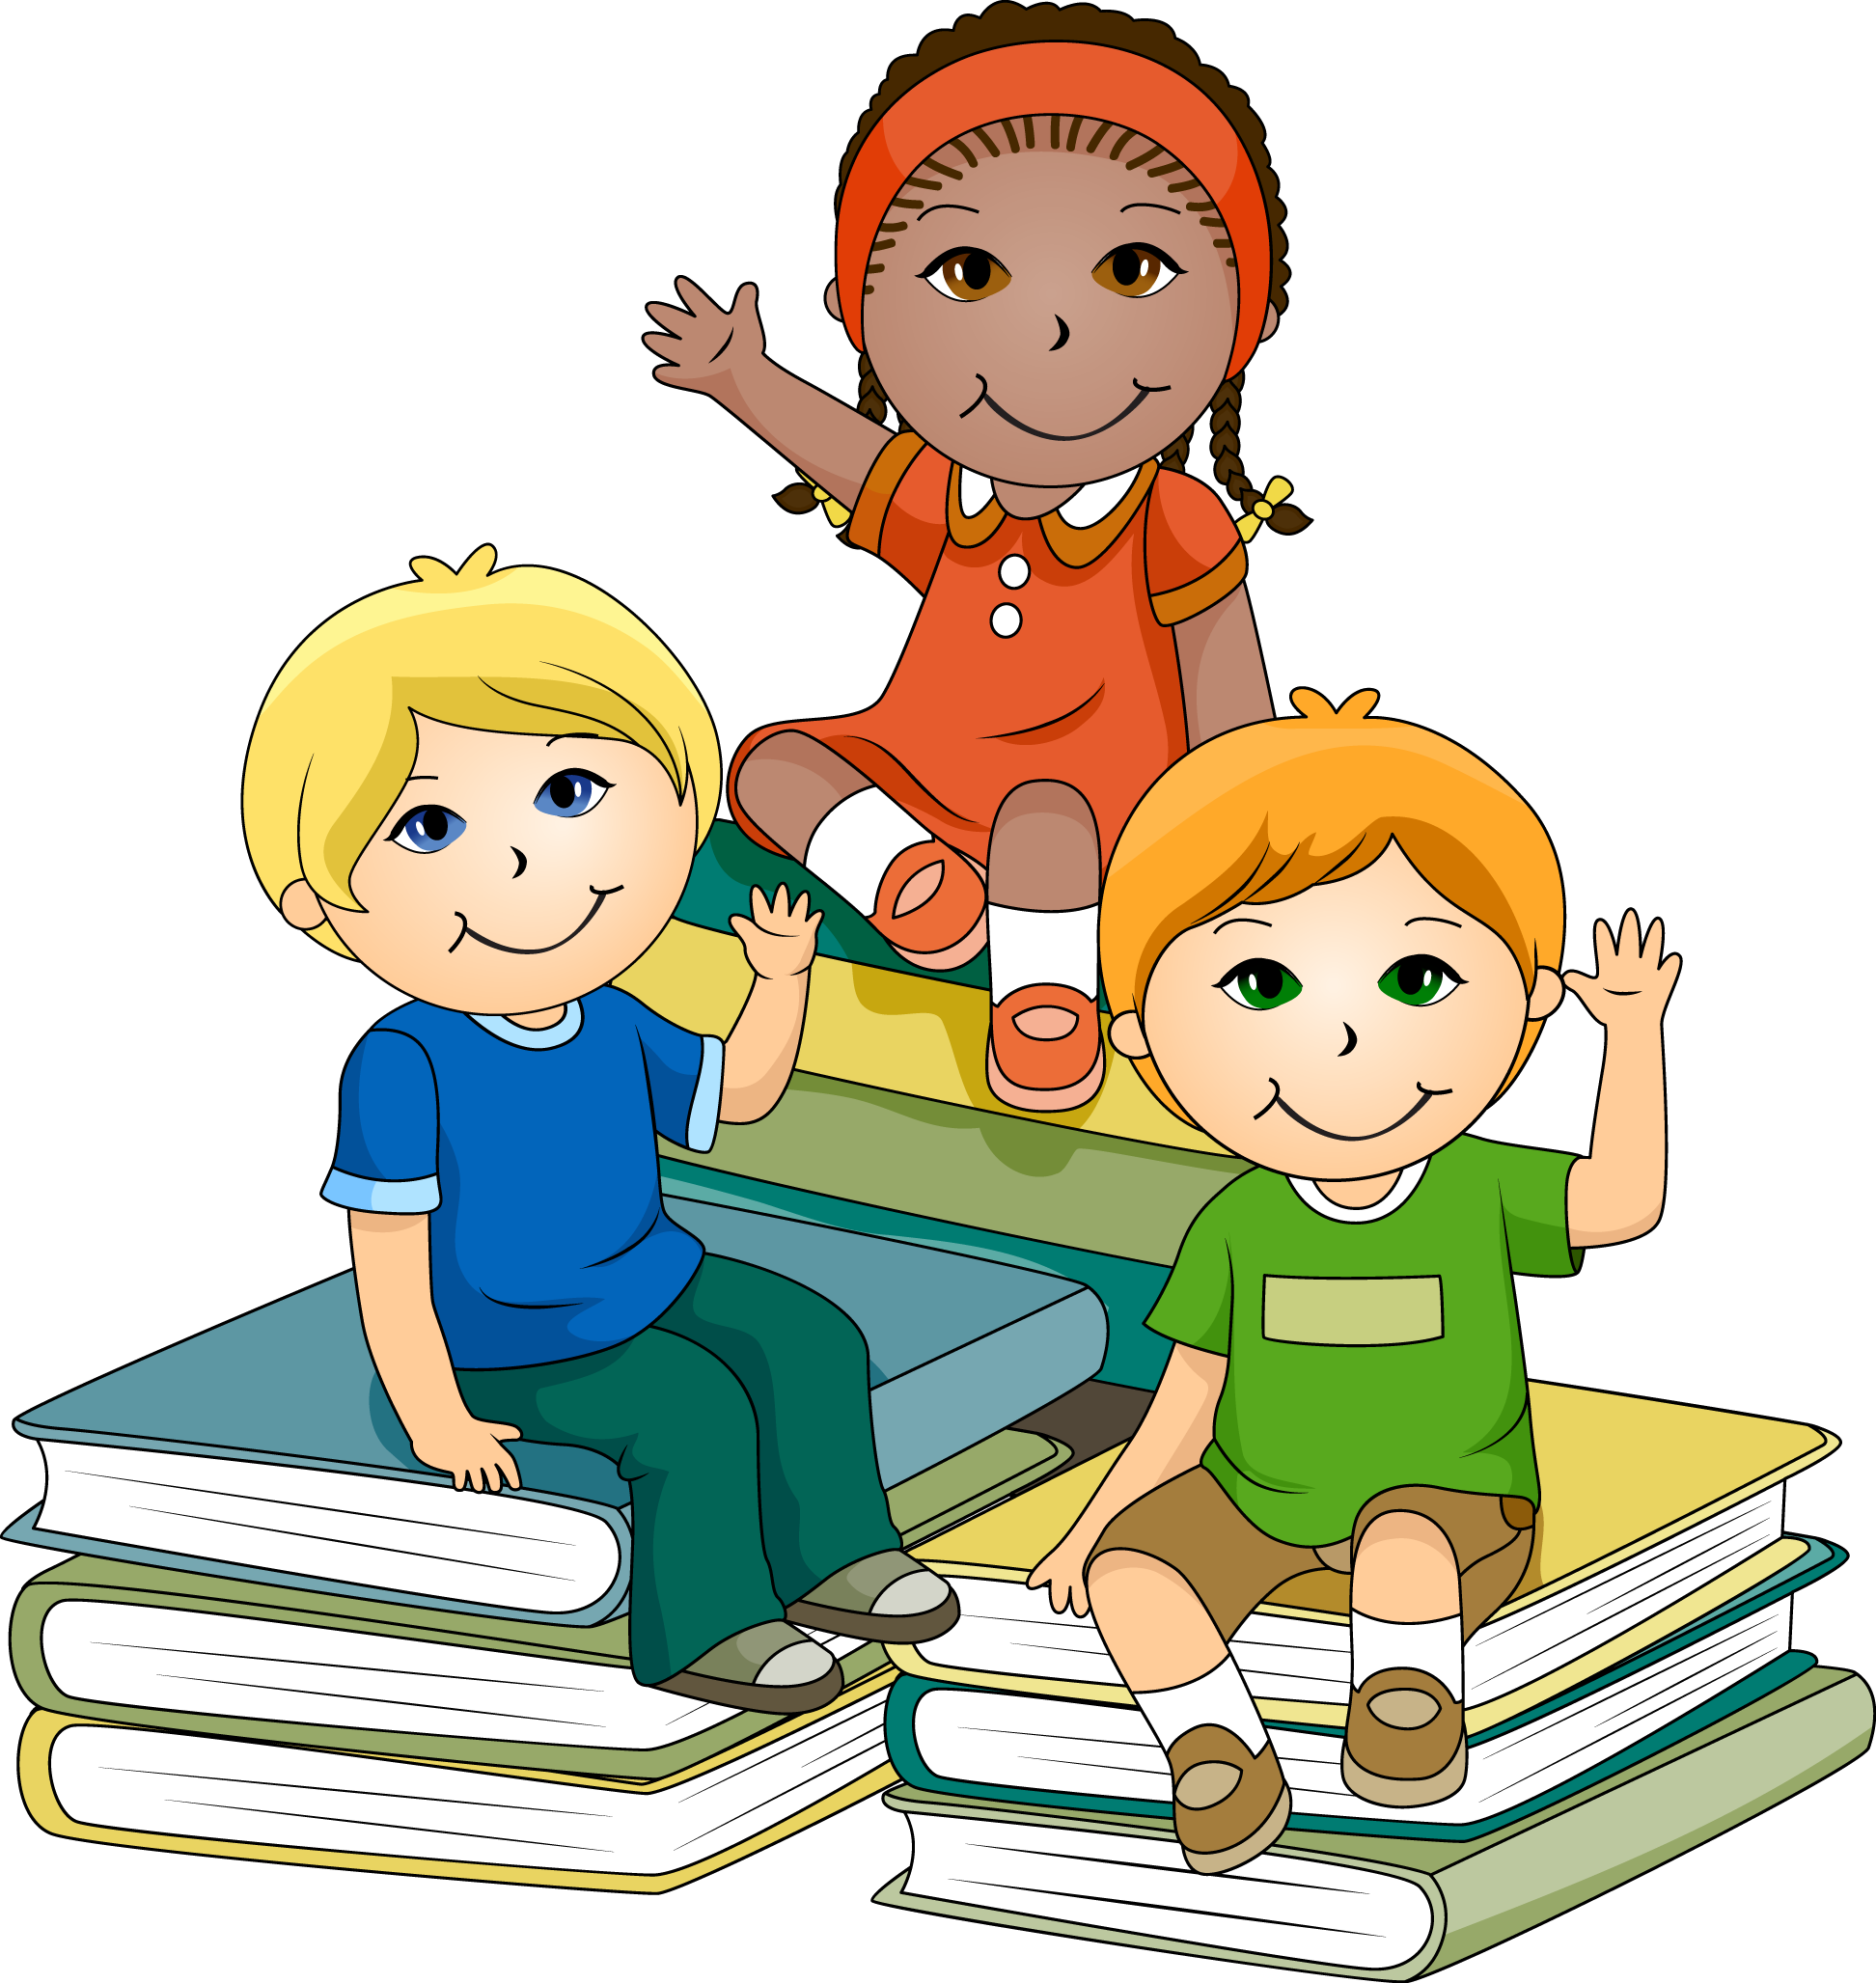 children clip art school - photo #28